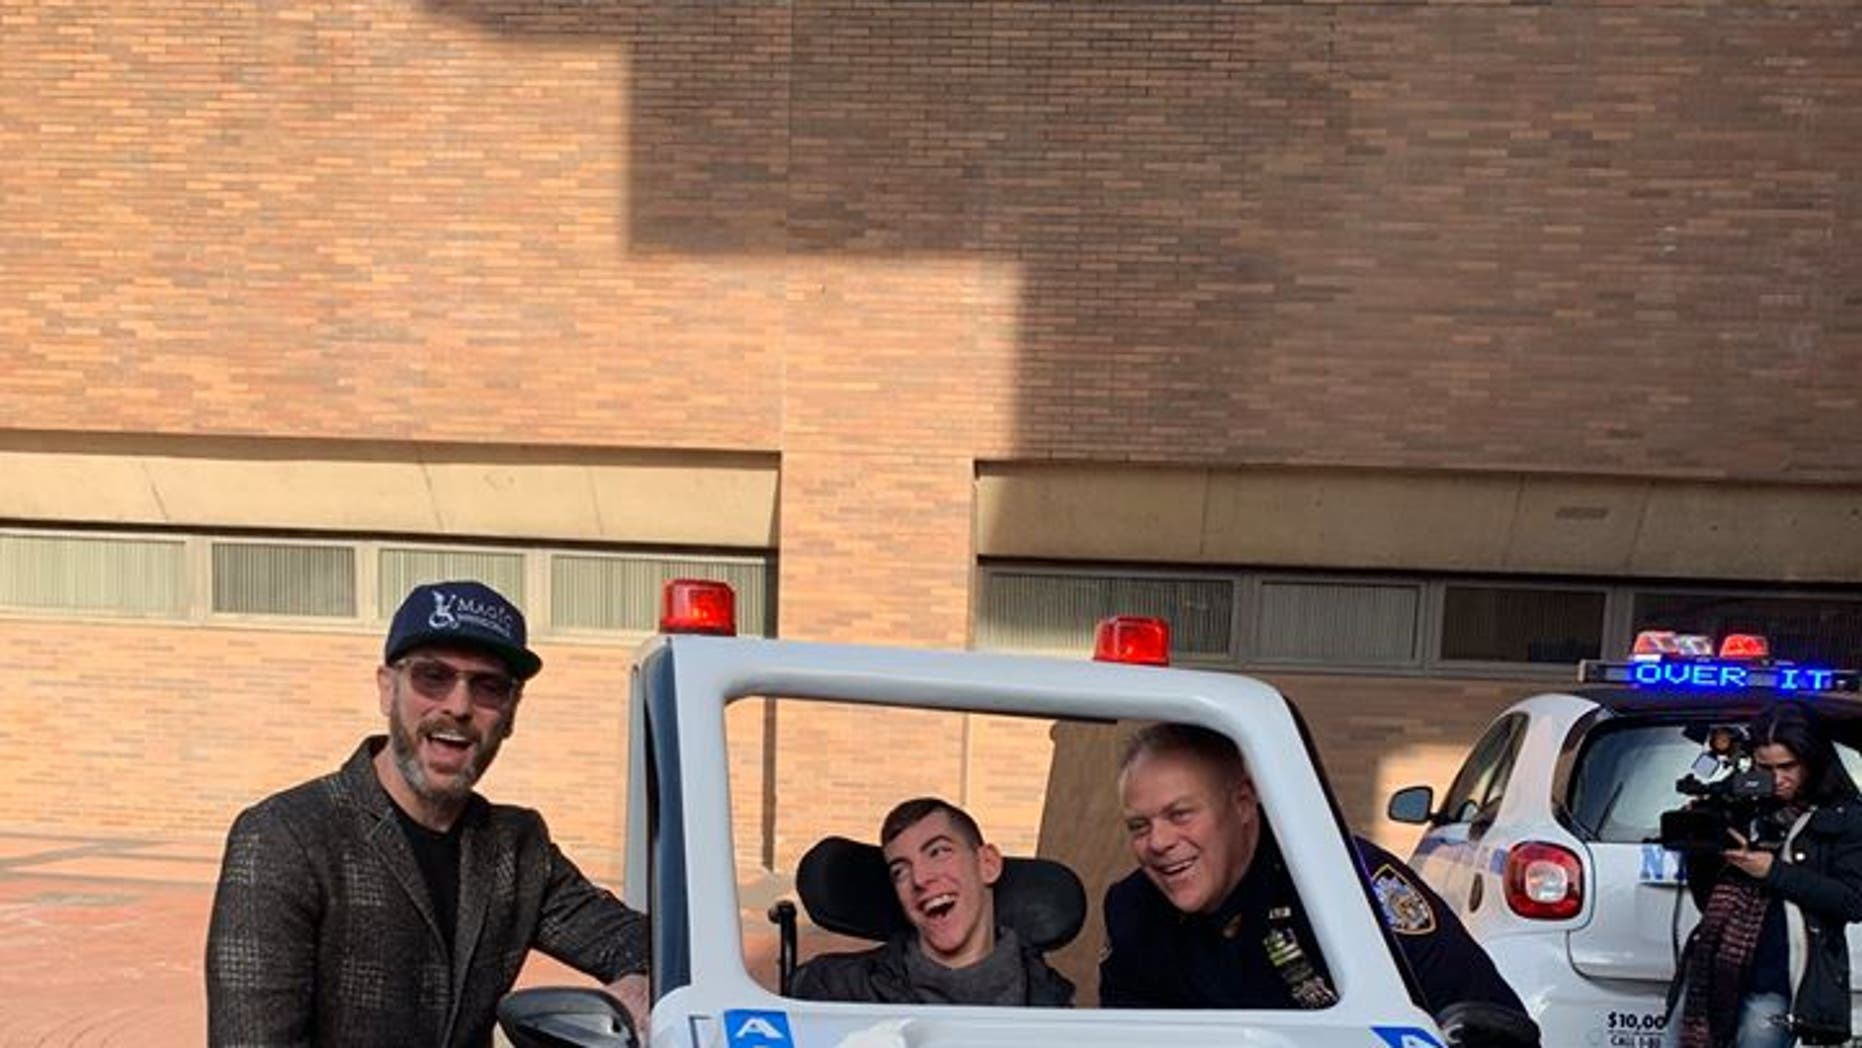 Aidan Riley, pictured with his police officer father and David Vogel, regional director of Magic Wheelchair, received his customized car on Wednesday.